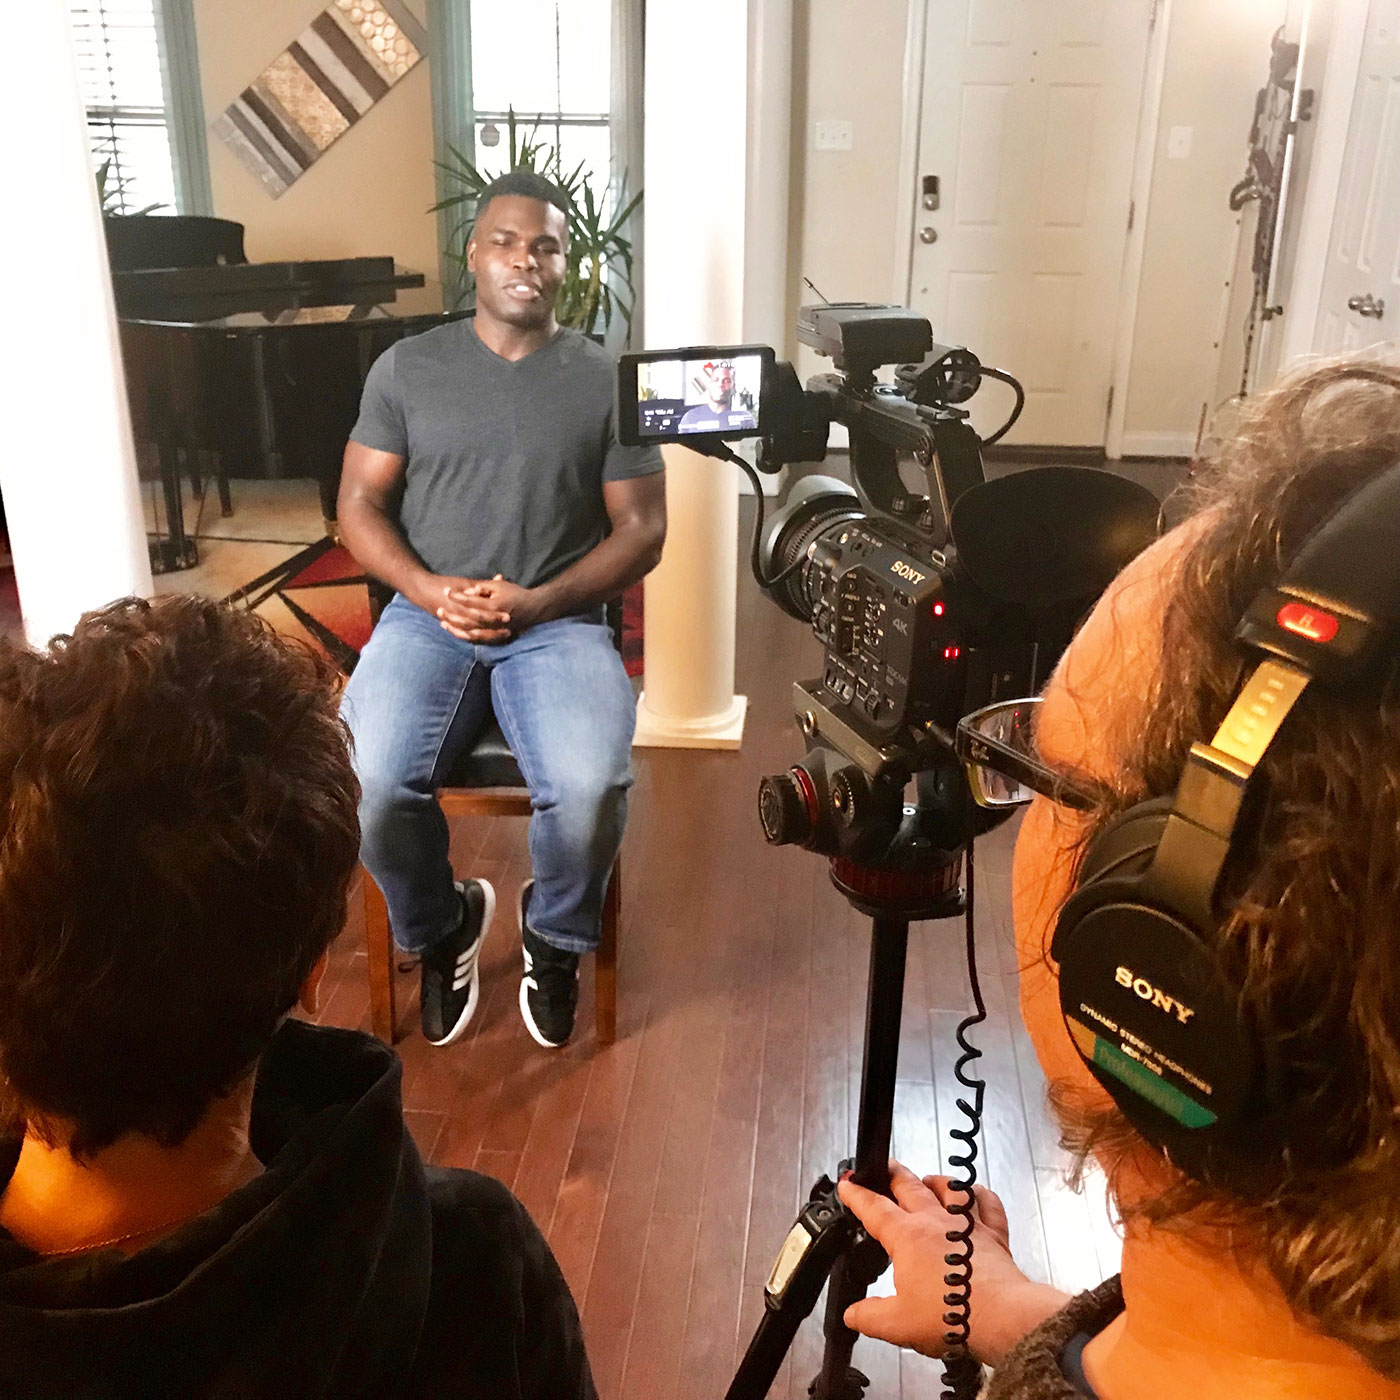 African American young man Mario being interviewed by Patty Zagarella and crew, for Blind Love